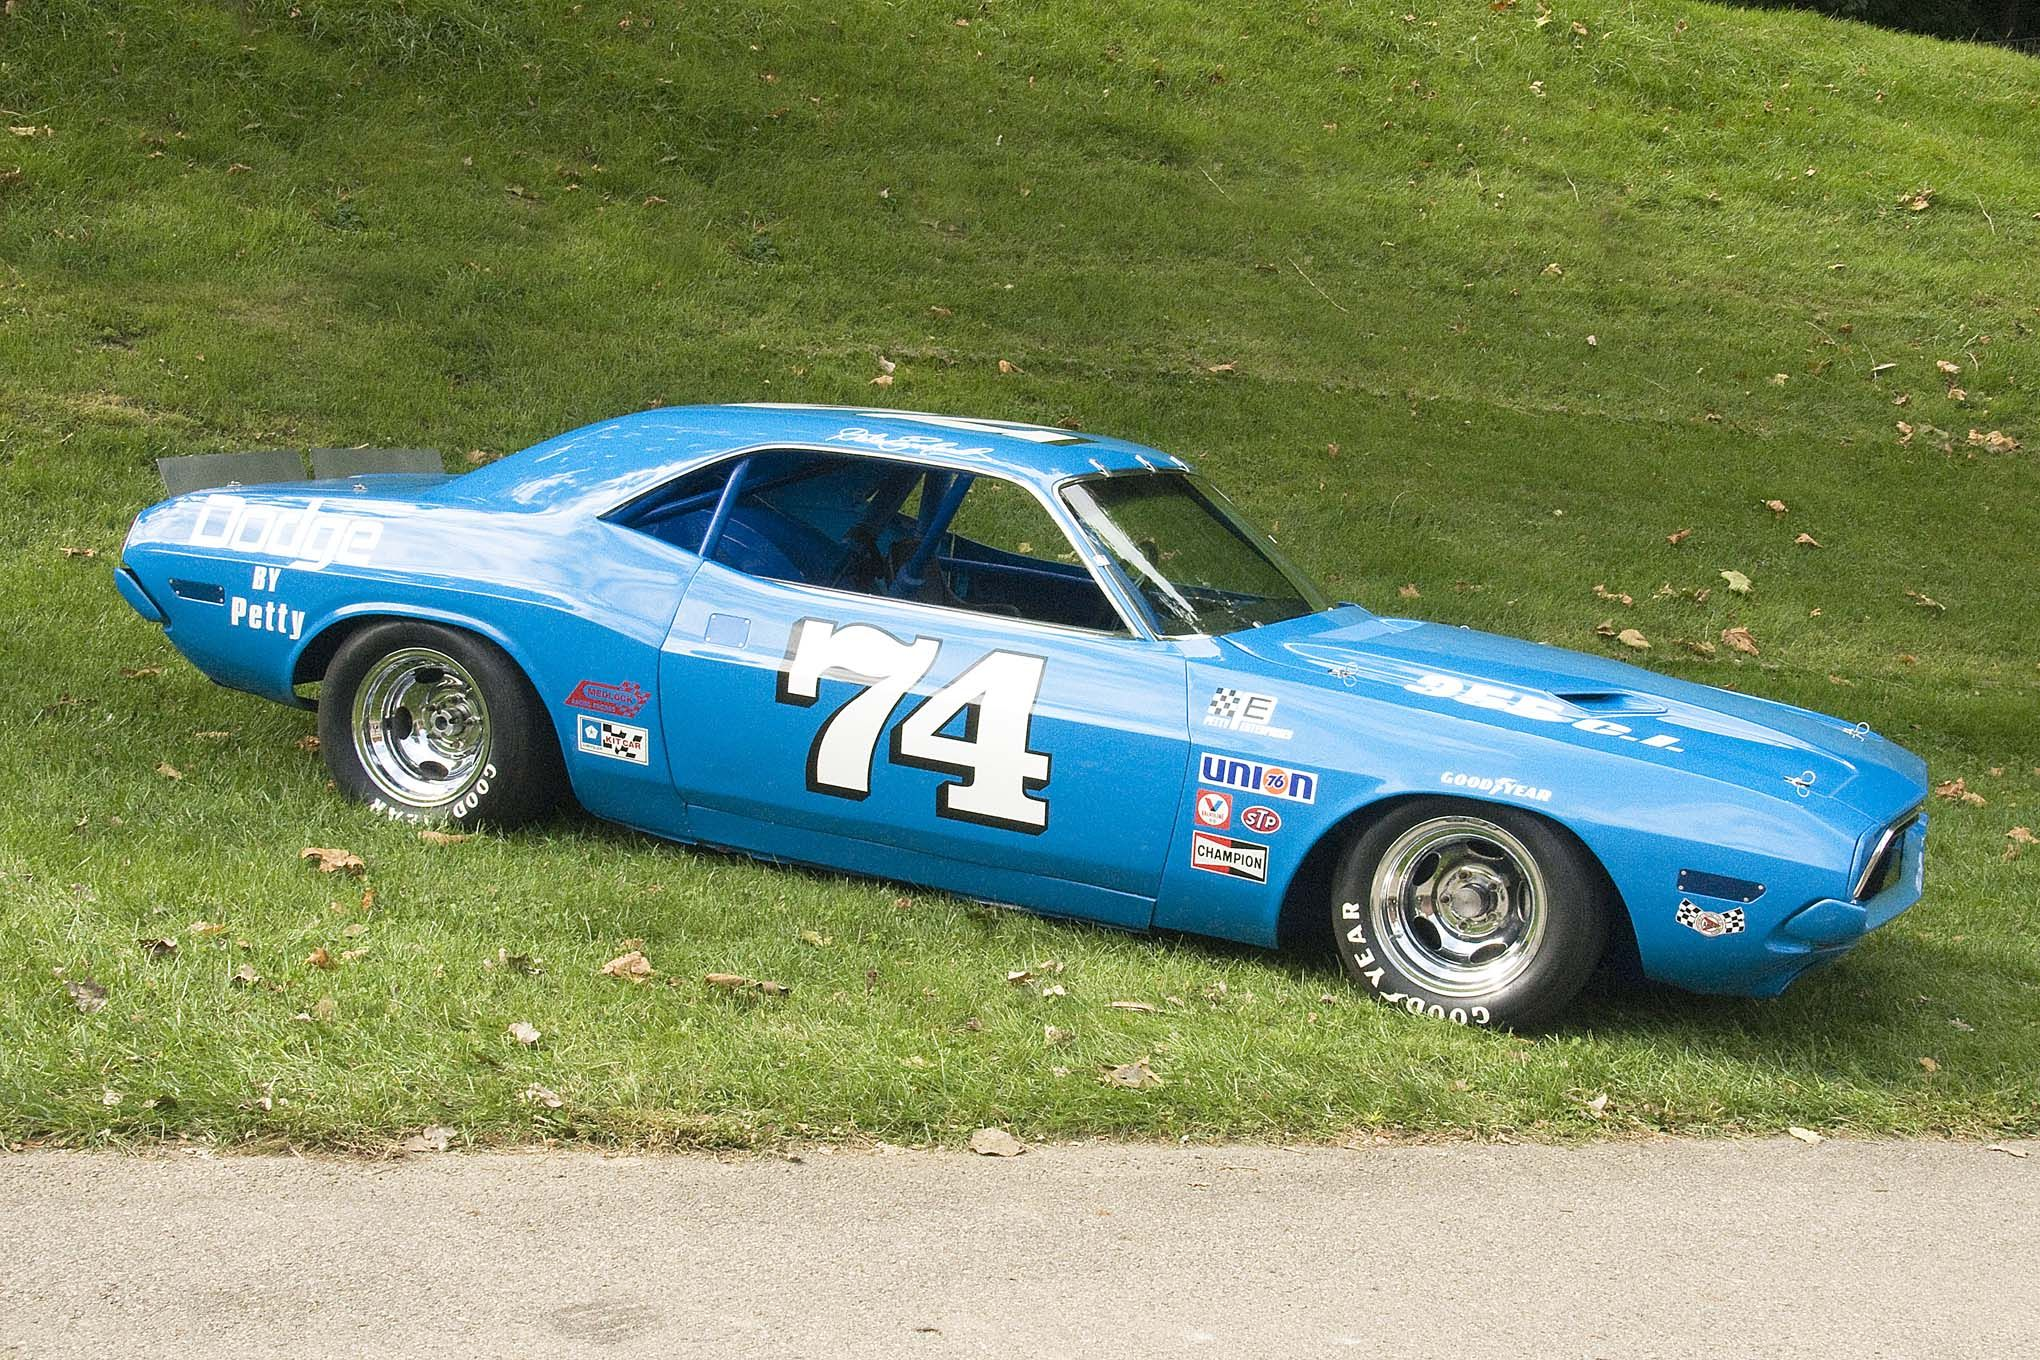 This Mopar kit race car was initially available from the legendary ...